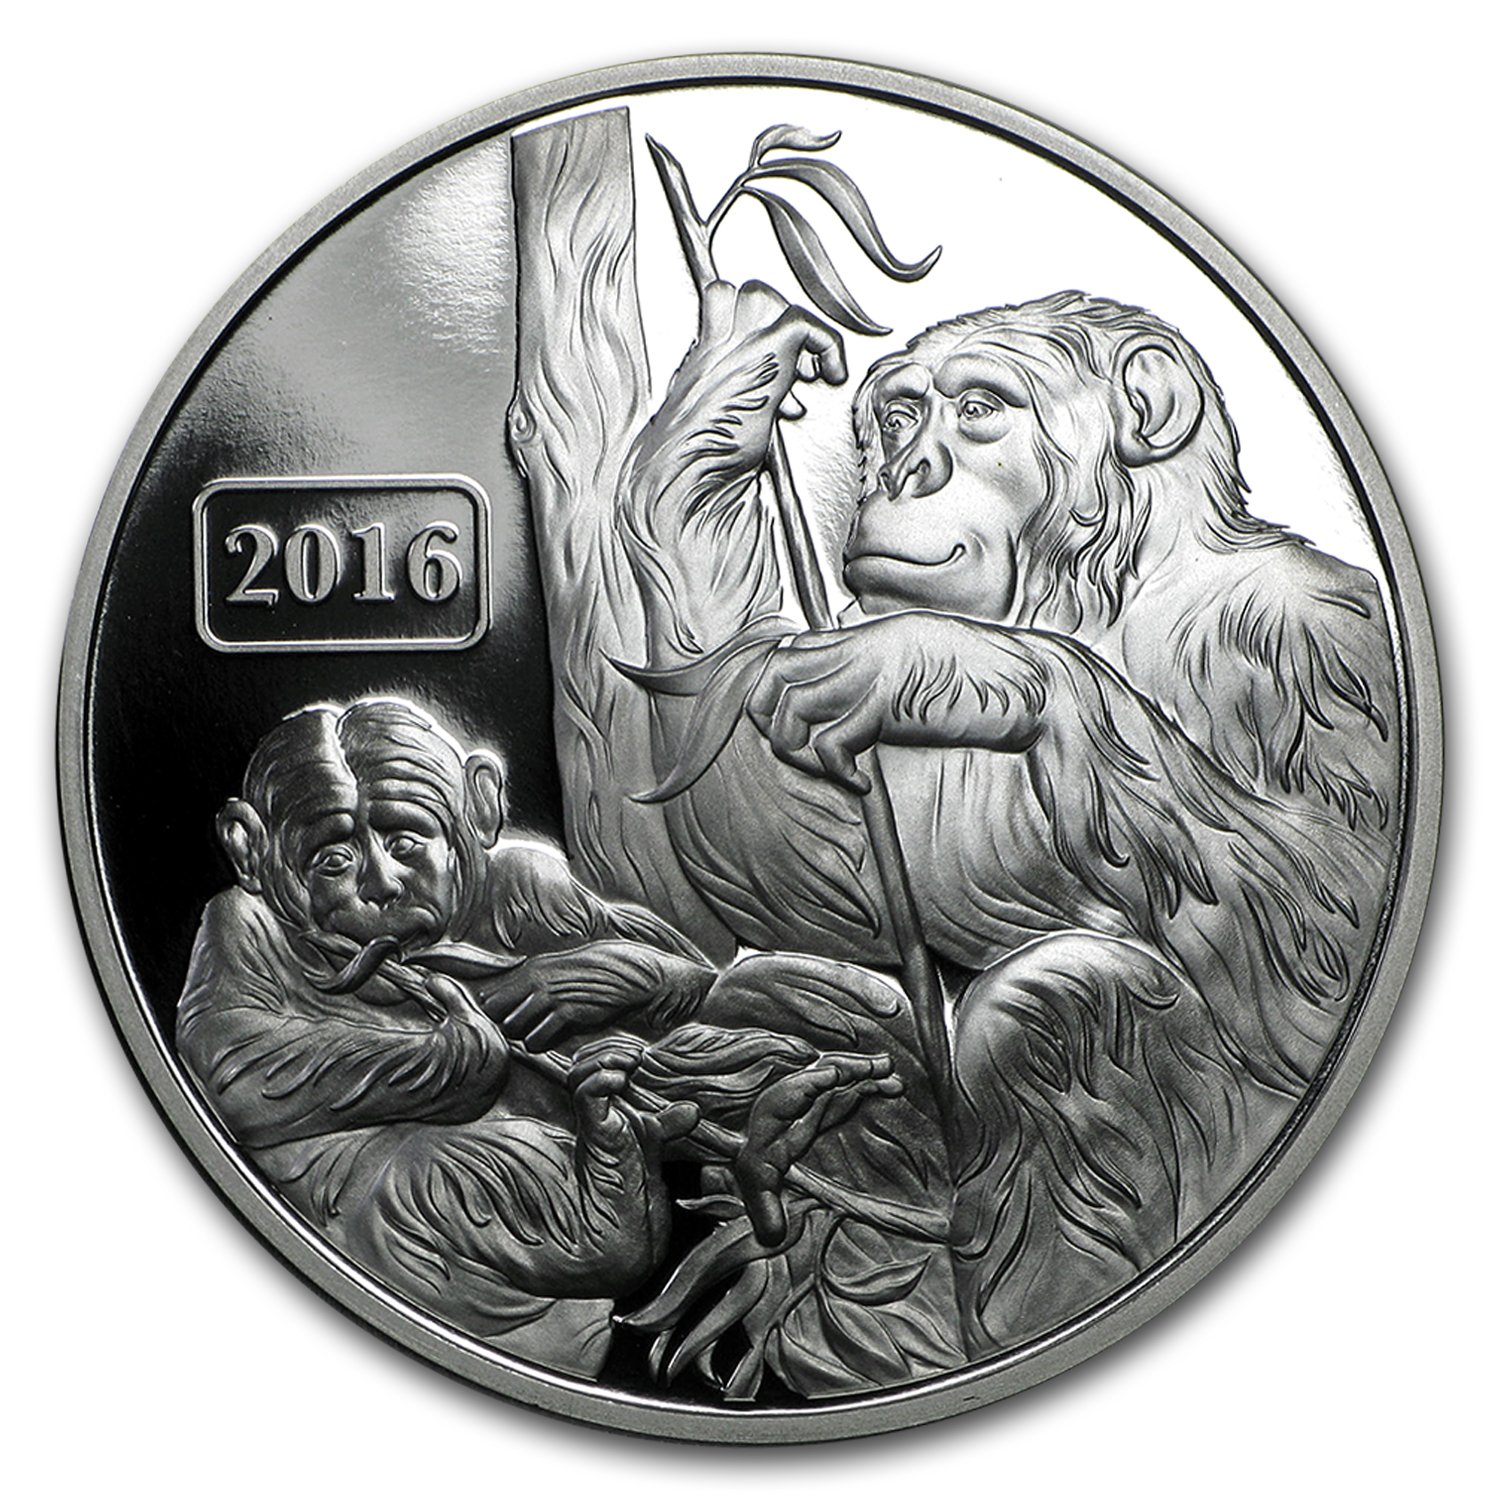 2016 Tokelau 1 oz Proof Silver Year of the Monkey Family